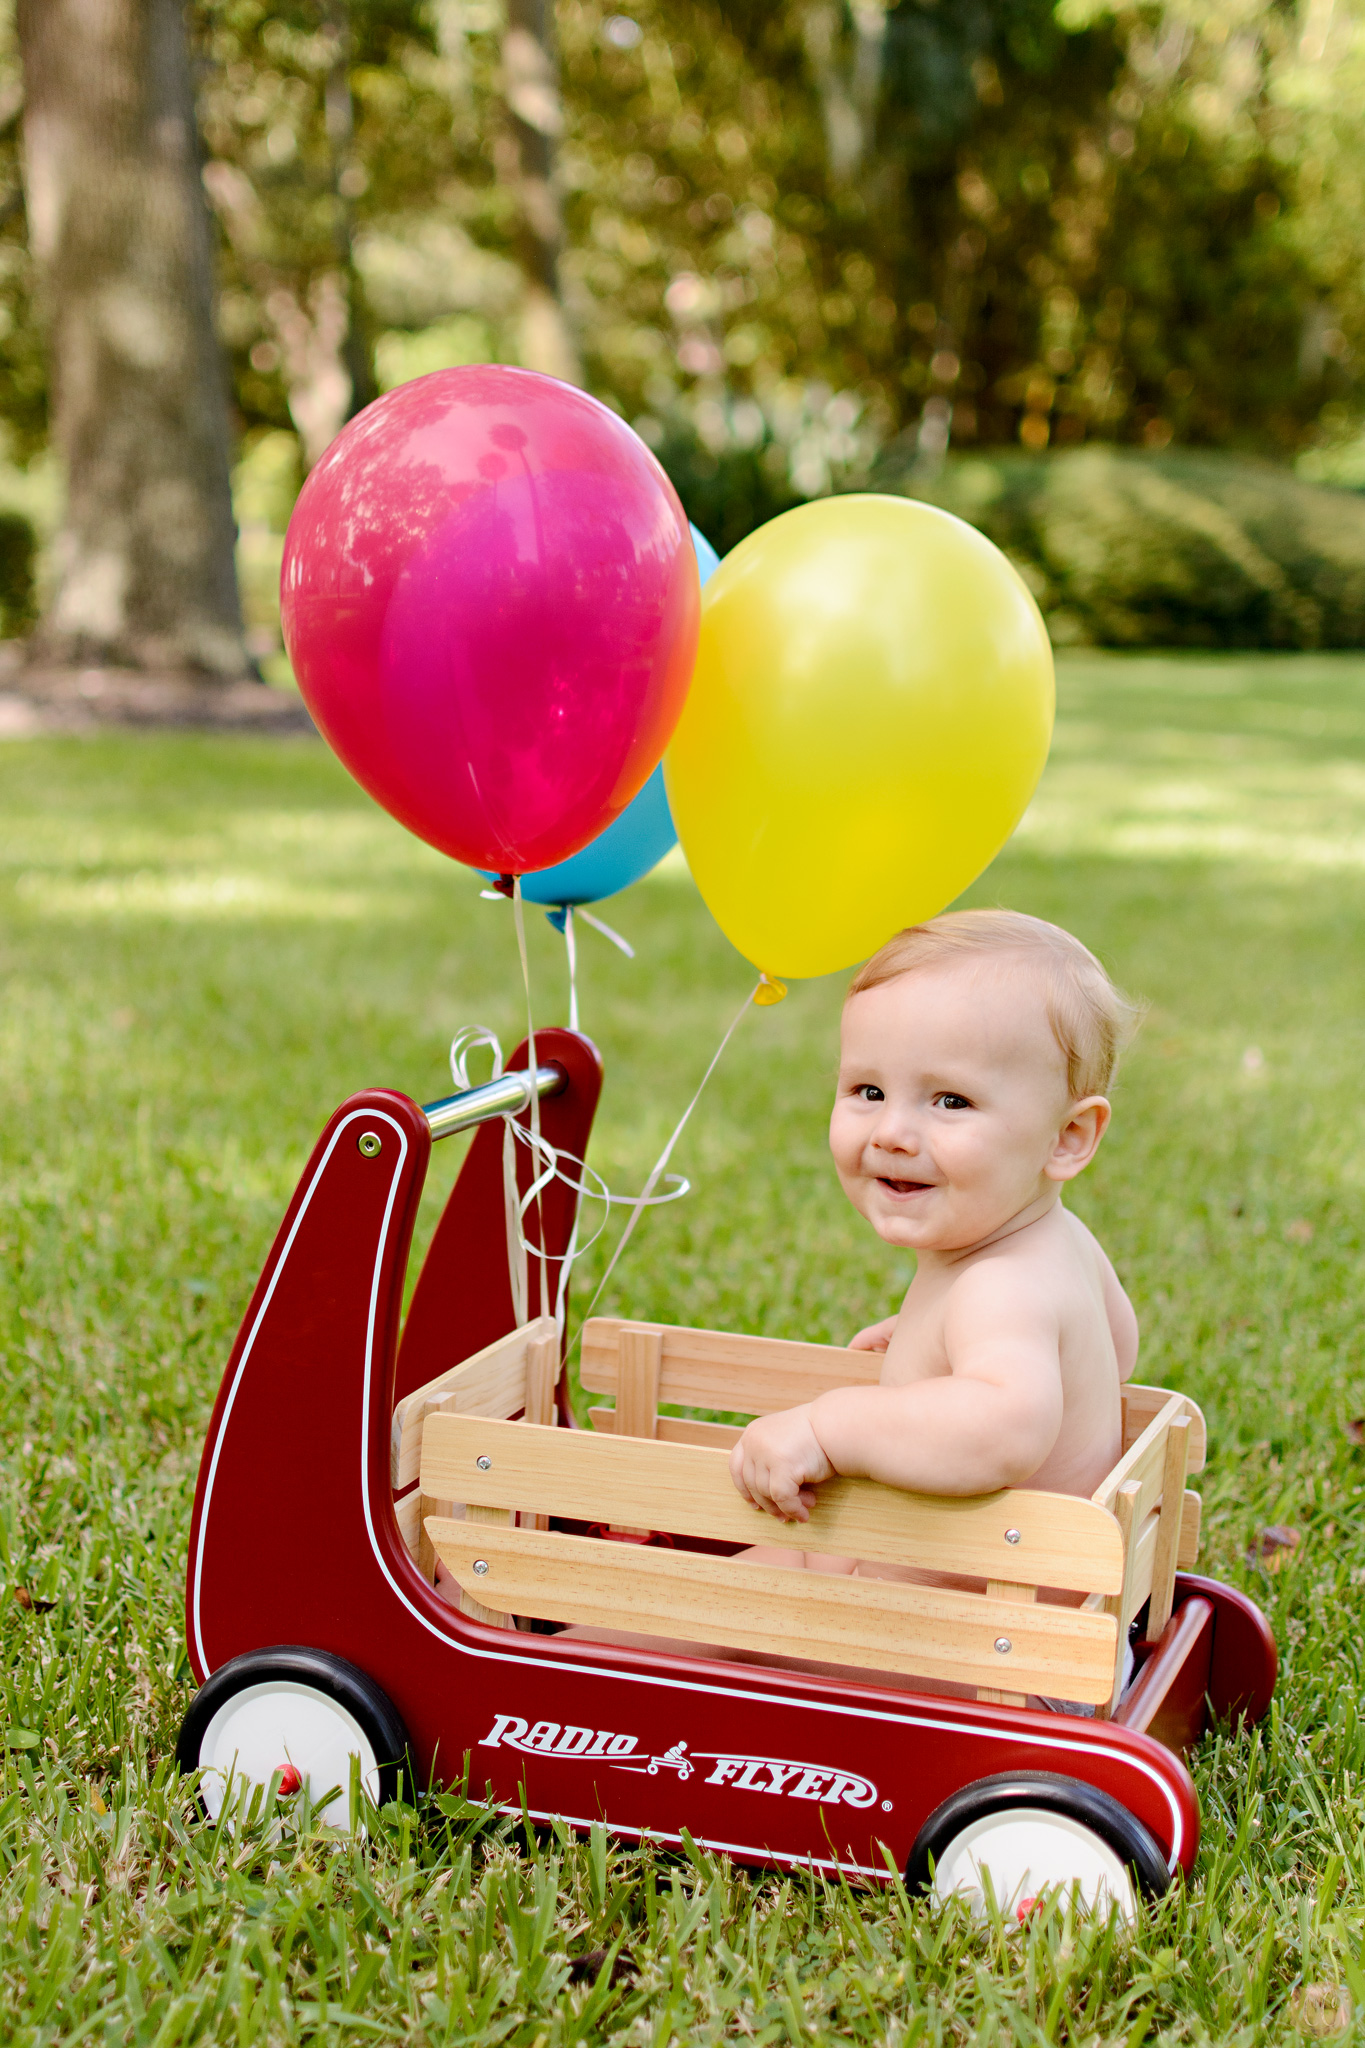 Baby with balloons for first birthday at Plant Park in Tampa, Florida taken by Carlie Chew Photography